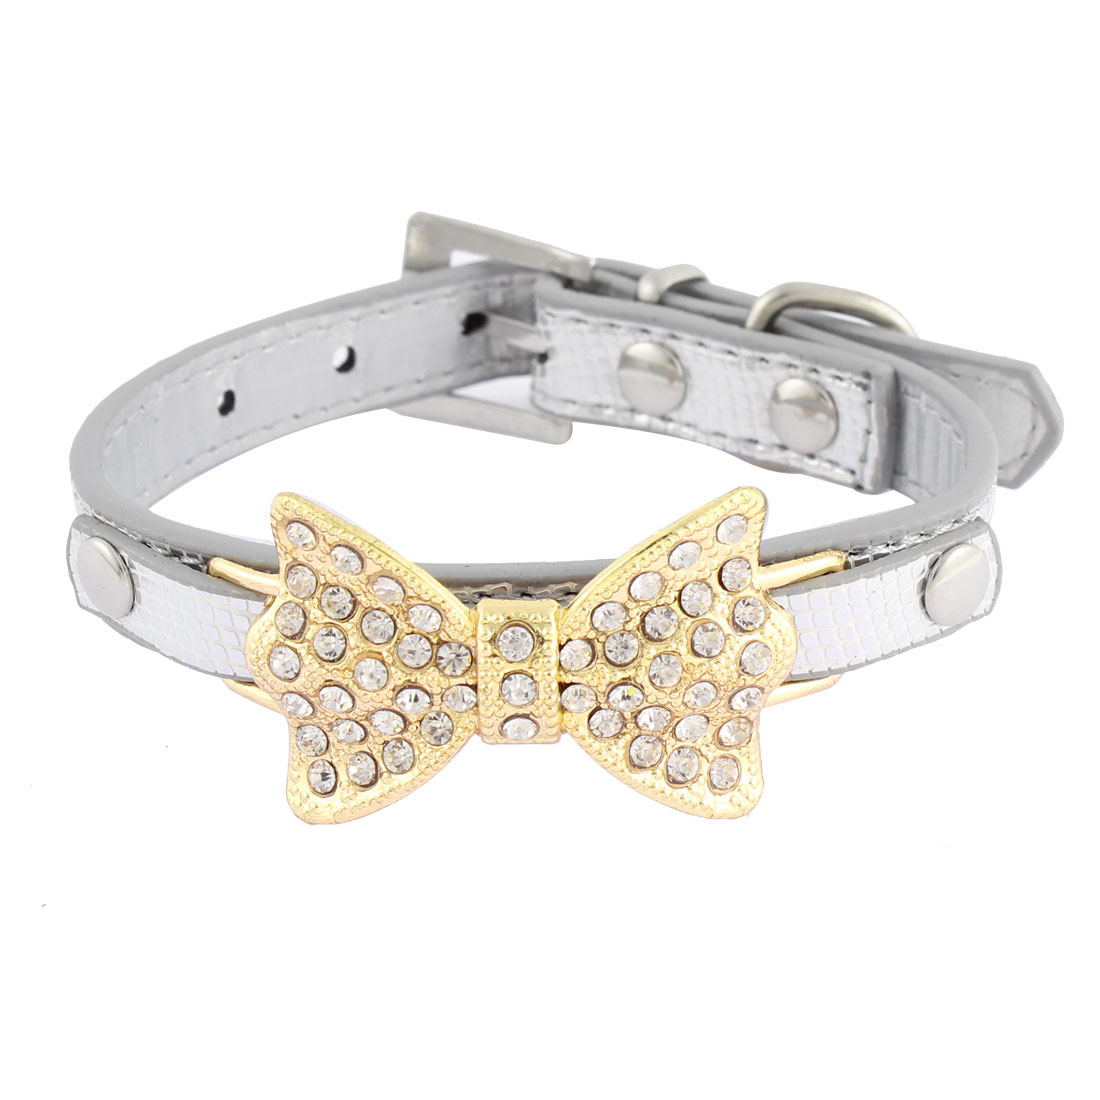 Alligator Pattern Bow Detail Rhinestone Decor Pet Dog Kitty Collar 21.5-28cm Silver Tone